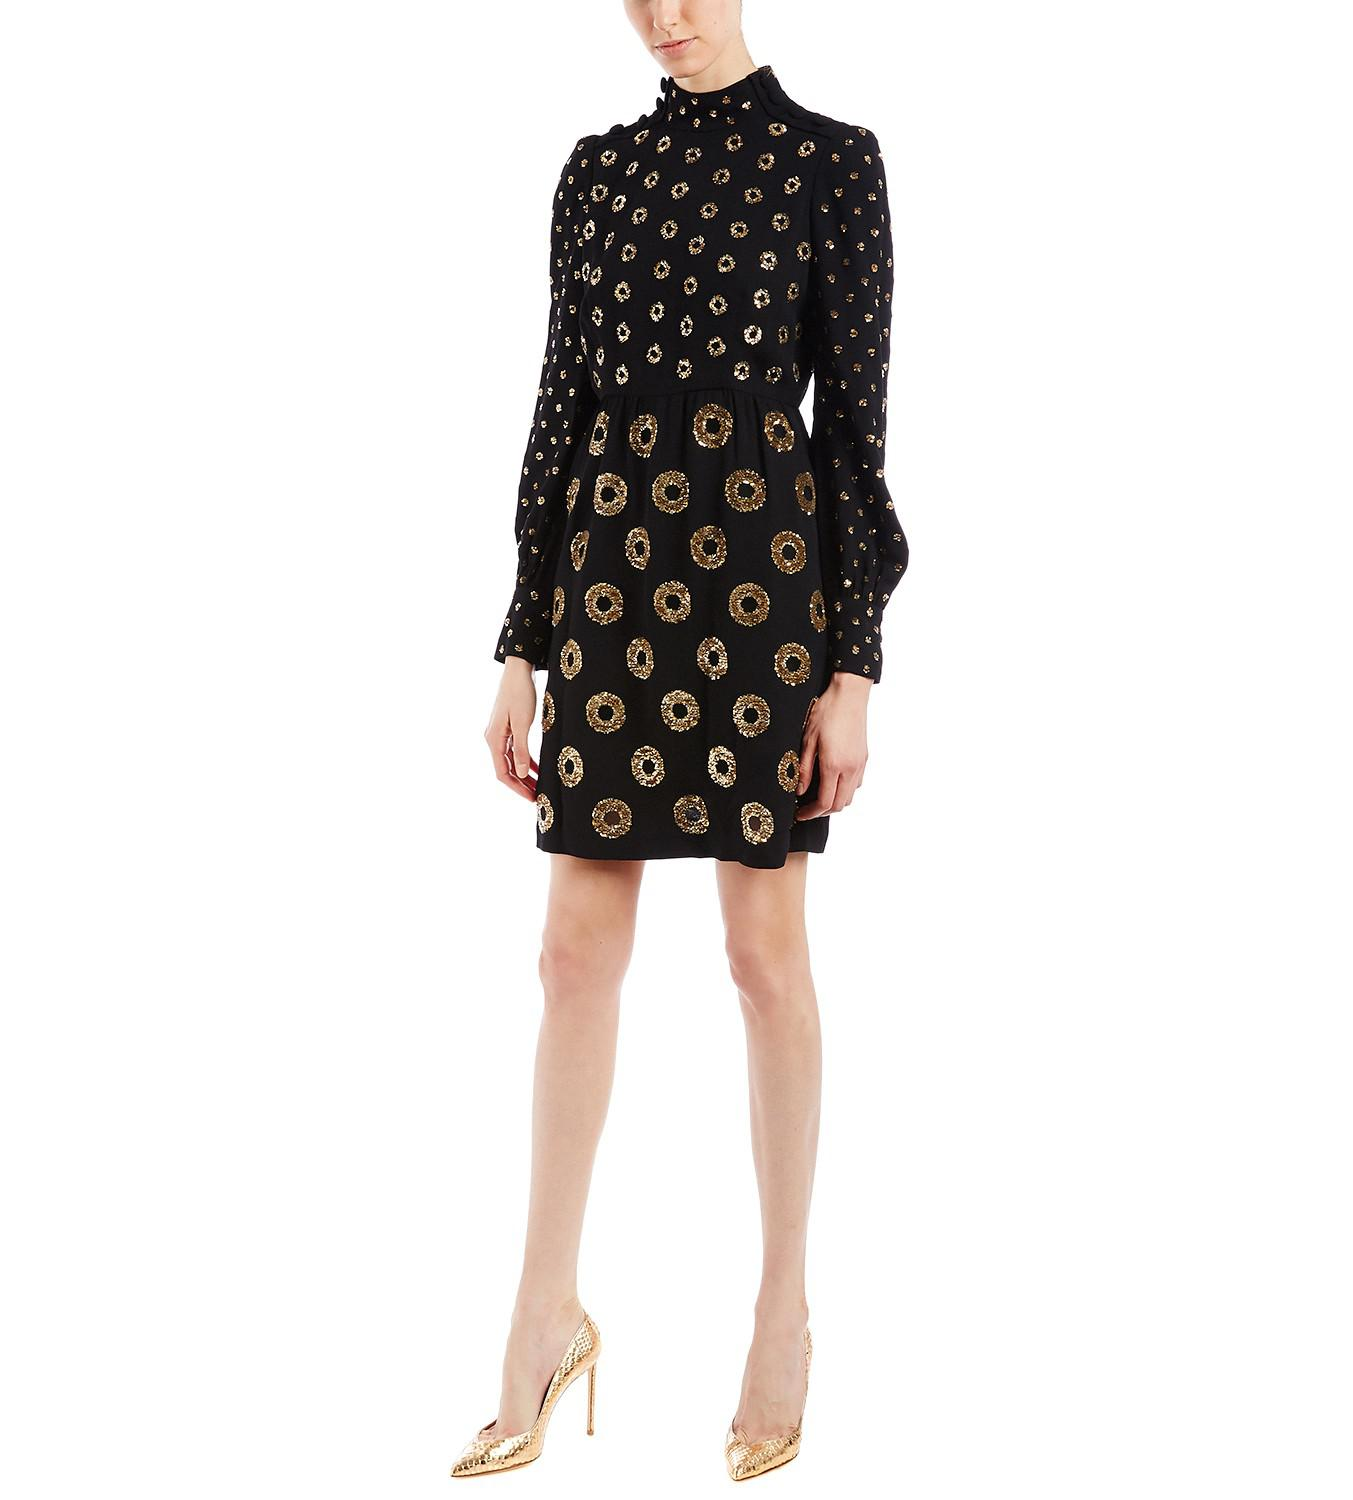 Marc Jacobs. Women's Metallic Sequin Circles Black Dress